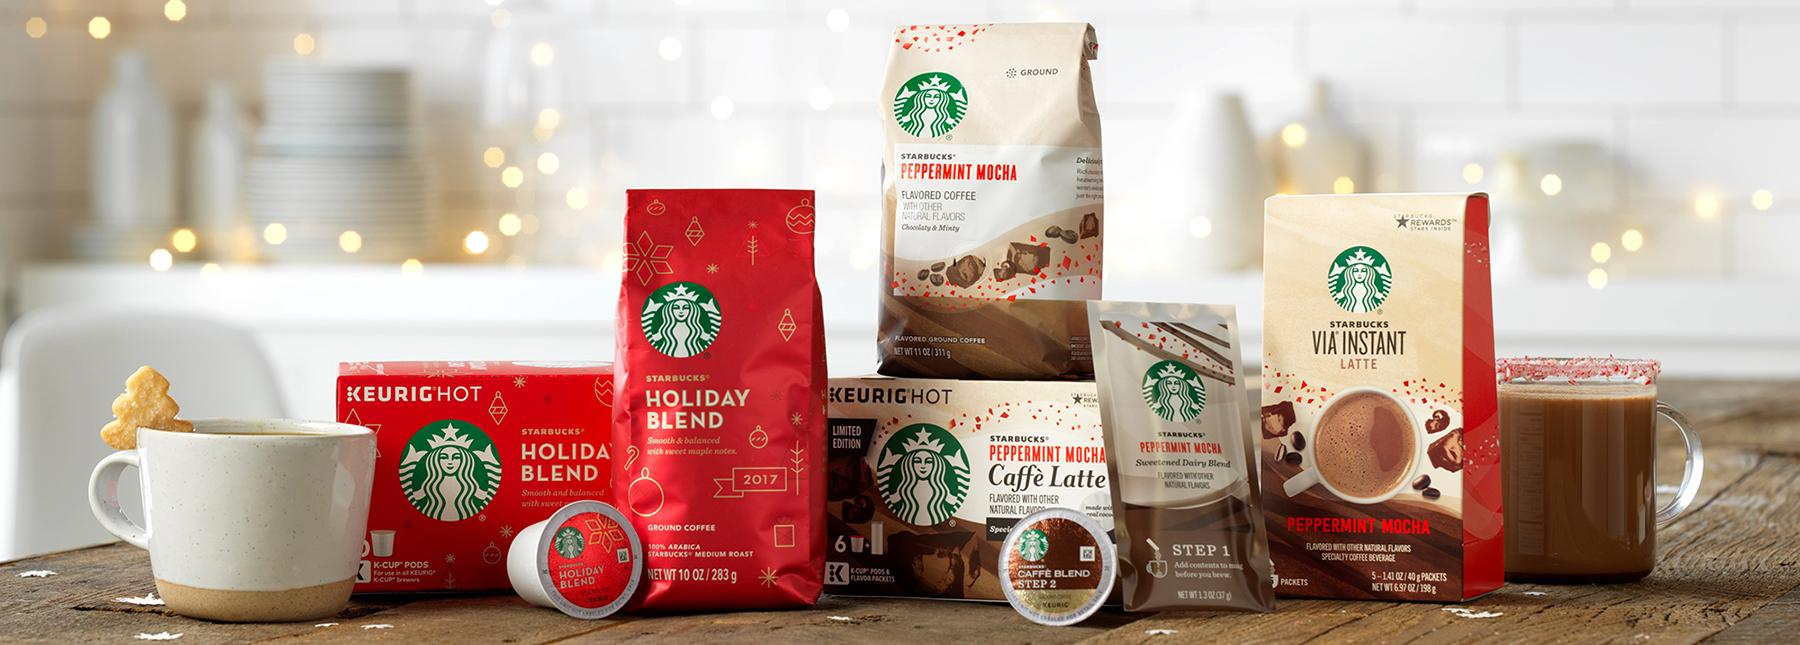 You know it is the holidays when the Holiday Blend shows up in Starbucks. The Starbucks® Holiday Blend's elegant flavor with layers of herbal notes and maple is balanced for medium acidity. Share your love of the holiday season with your favorite coffee drinker by giving them a pound of Holiday Blend. (Image: Starbucks)